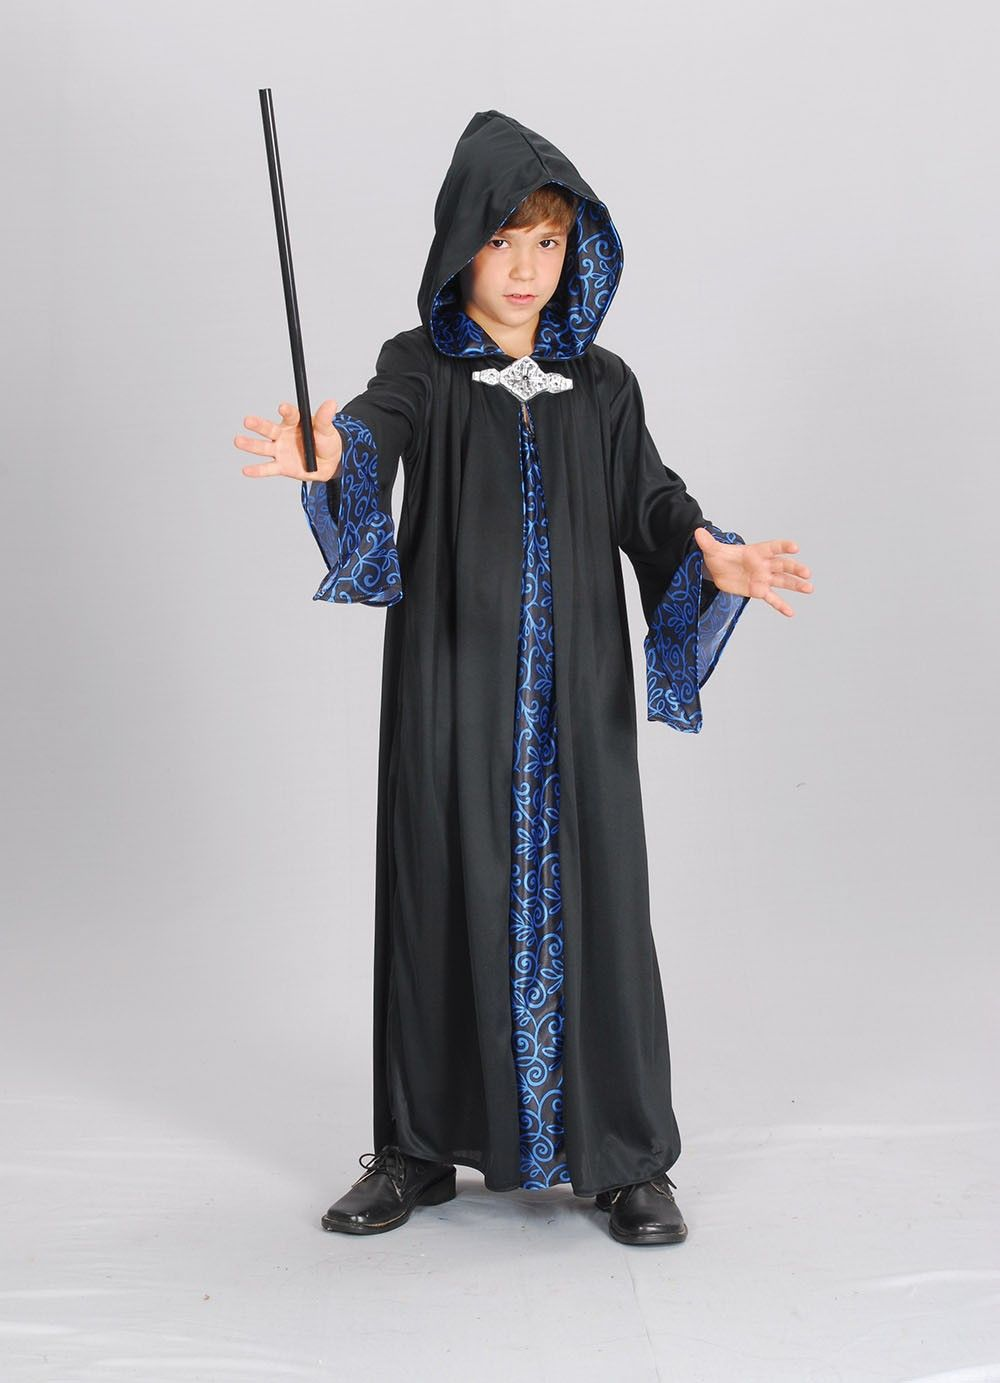 Wizard Robe Costume at funnfrolic.co.uk - £10.99